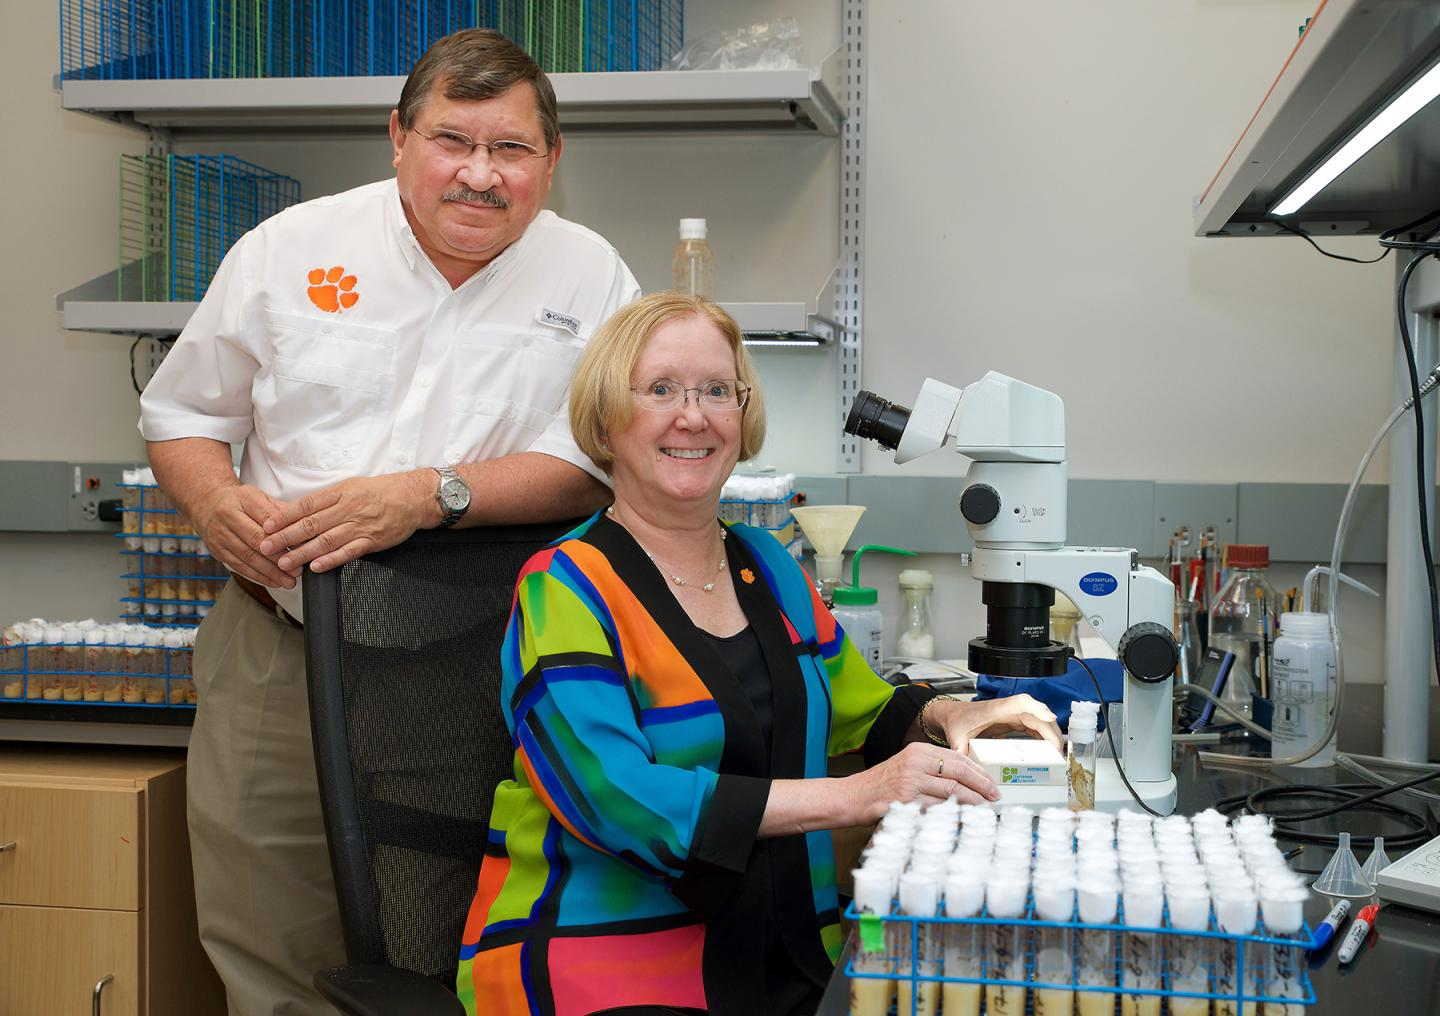 Trudy and Robert in Lab